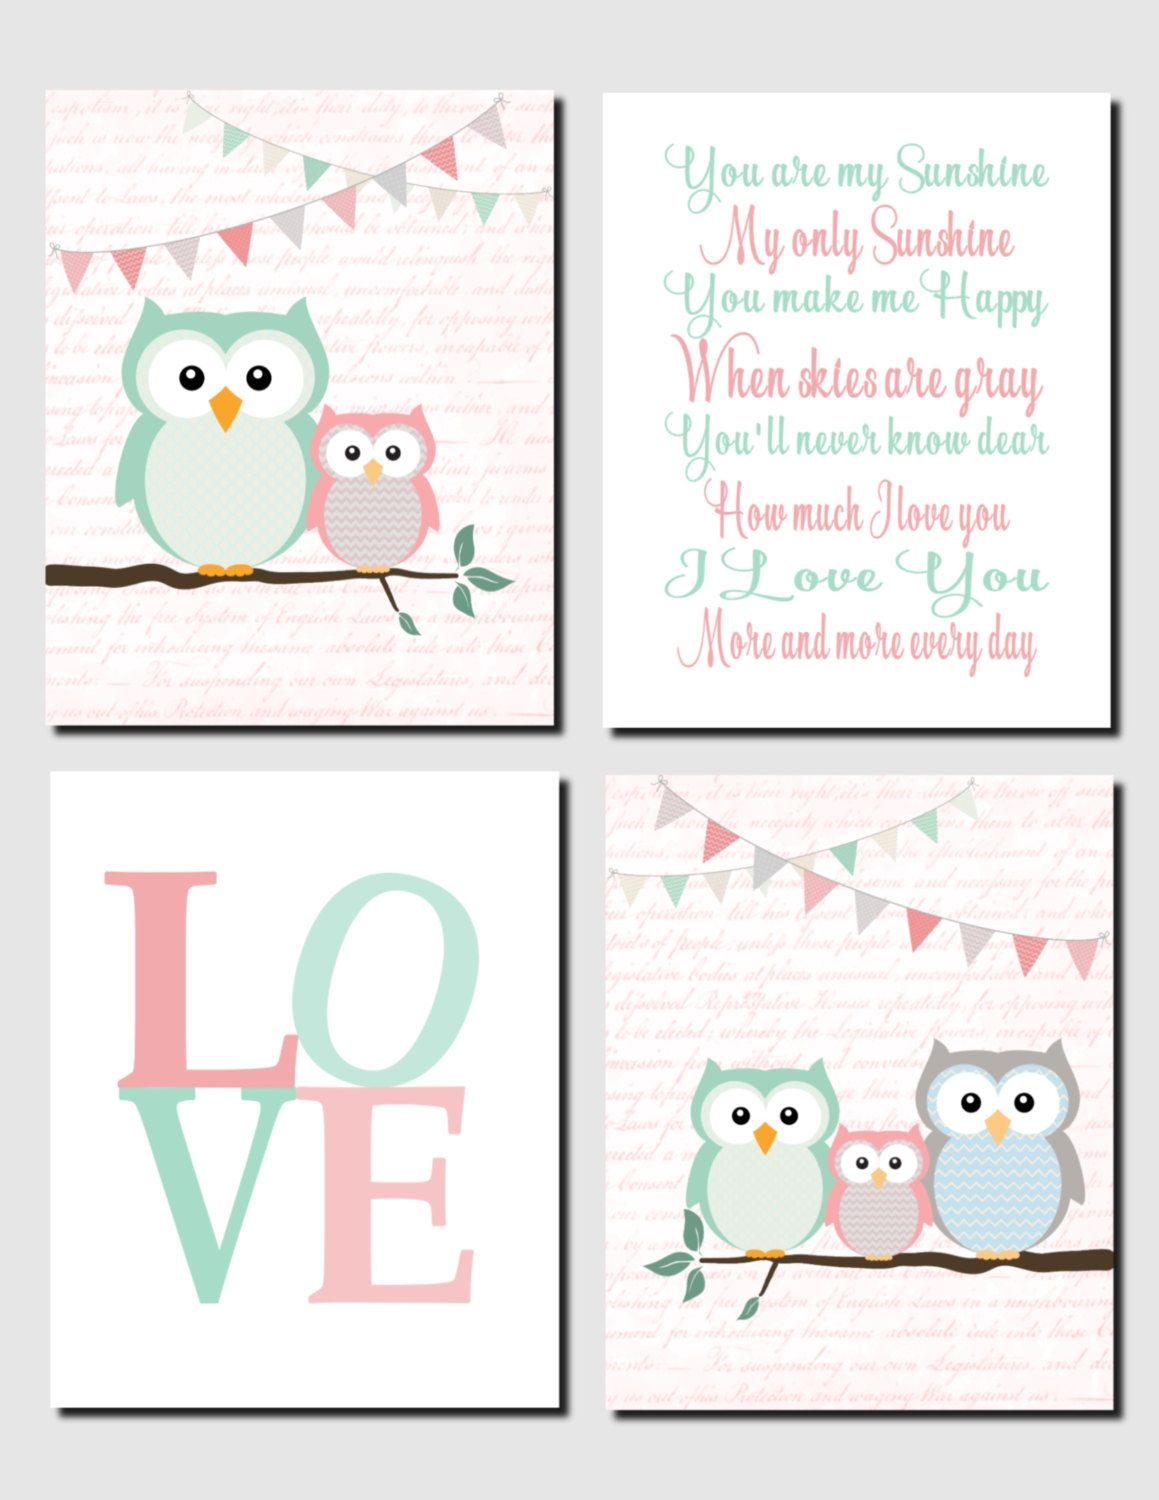 Baby Nursery Art Mint C Owl Wall Kids S Room You Are My Sunshine Love Theme Set Of 4 Prints By Vtdesigns On Etsy